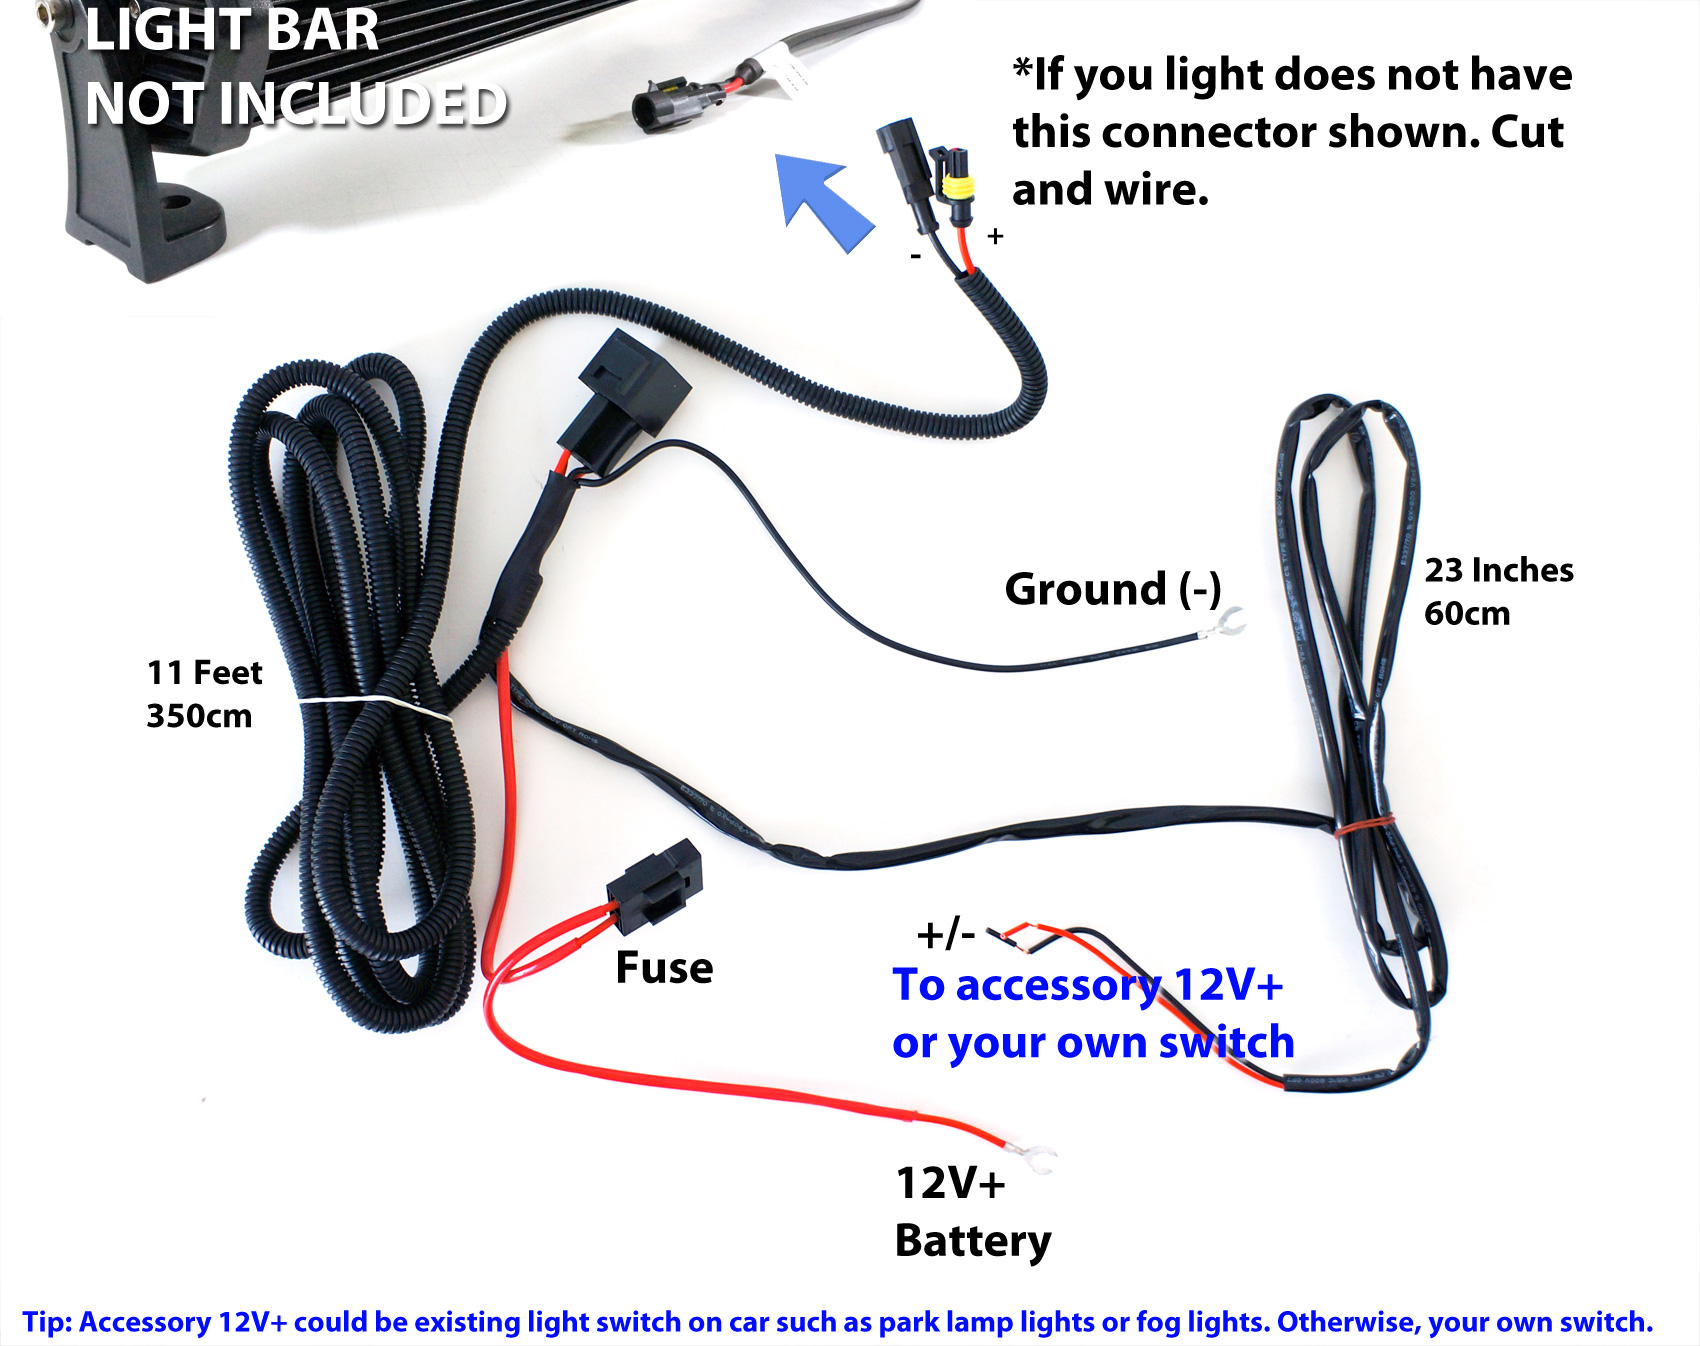 Light Bar Wiring Diagram Agt | Wiring Schematic Diagram on